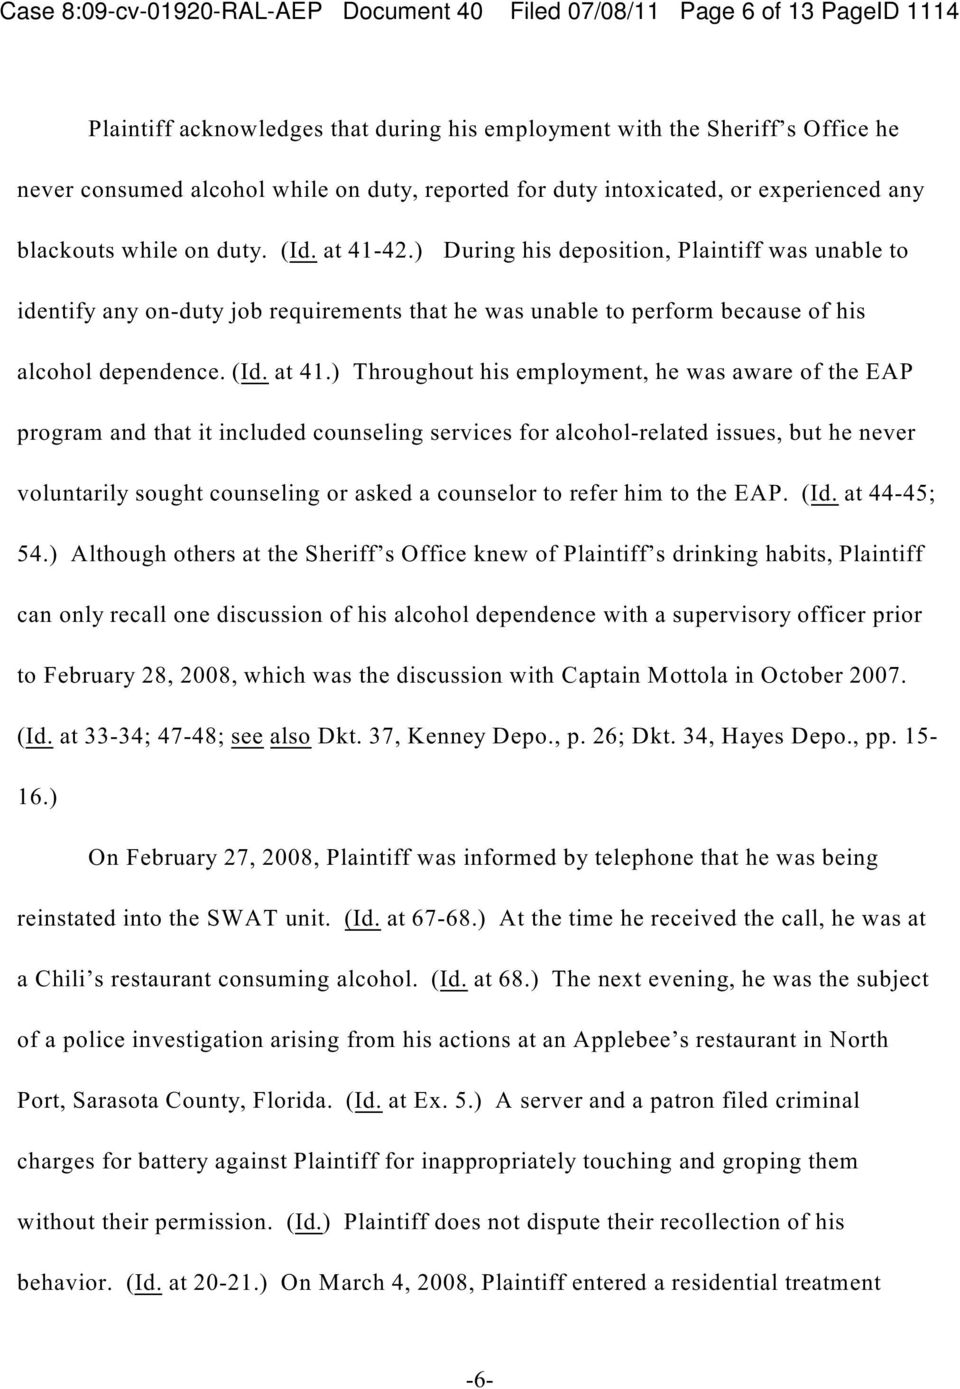 ) During his deposition, Plaintiff was unable to identify any on-duty job requirements at he was unable to perform because of his alcohol dependence. (Id. at 41.